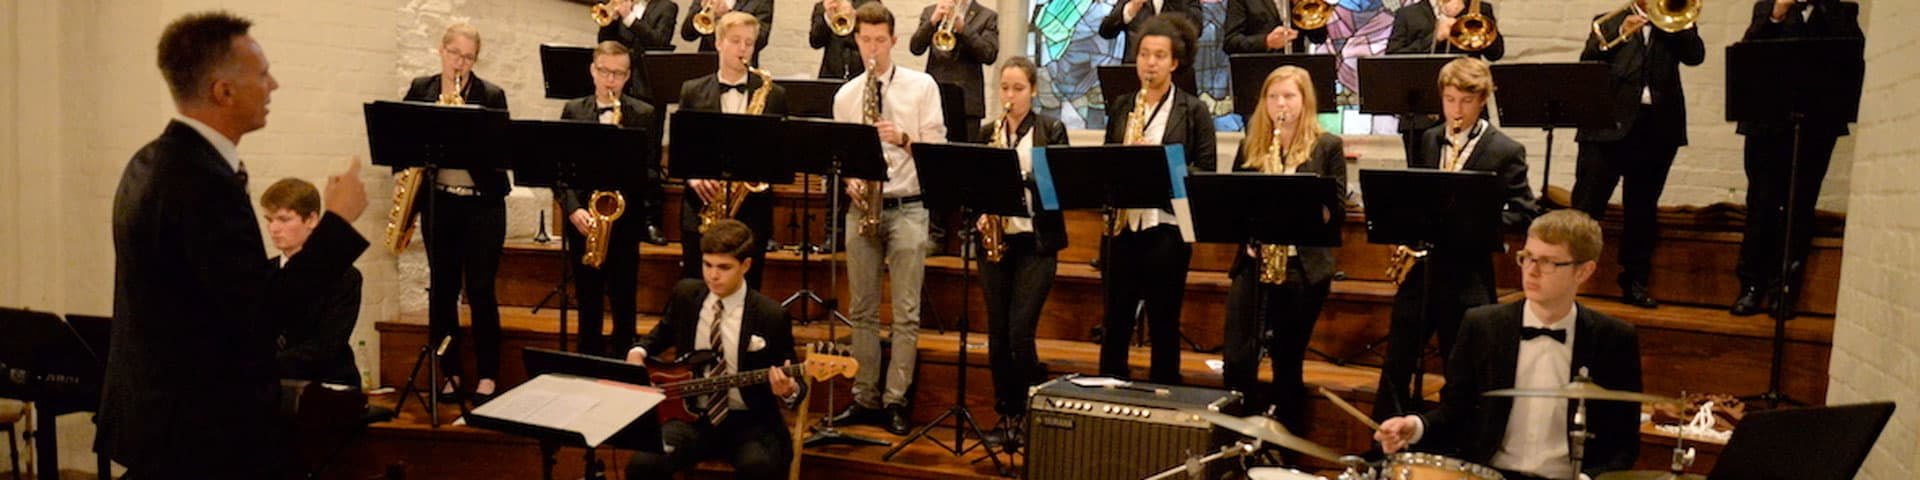 Altes Gymnasium Flensburg ensemble playing in front of a stained glass window.